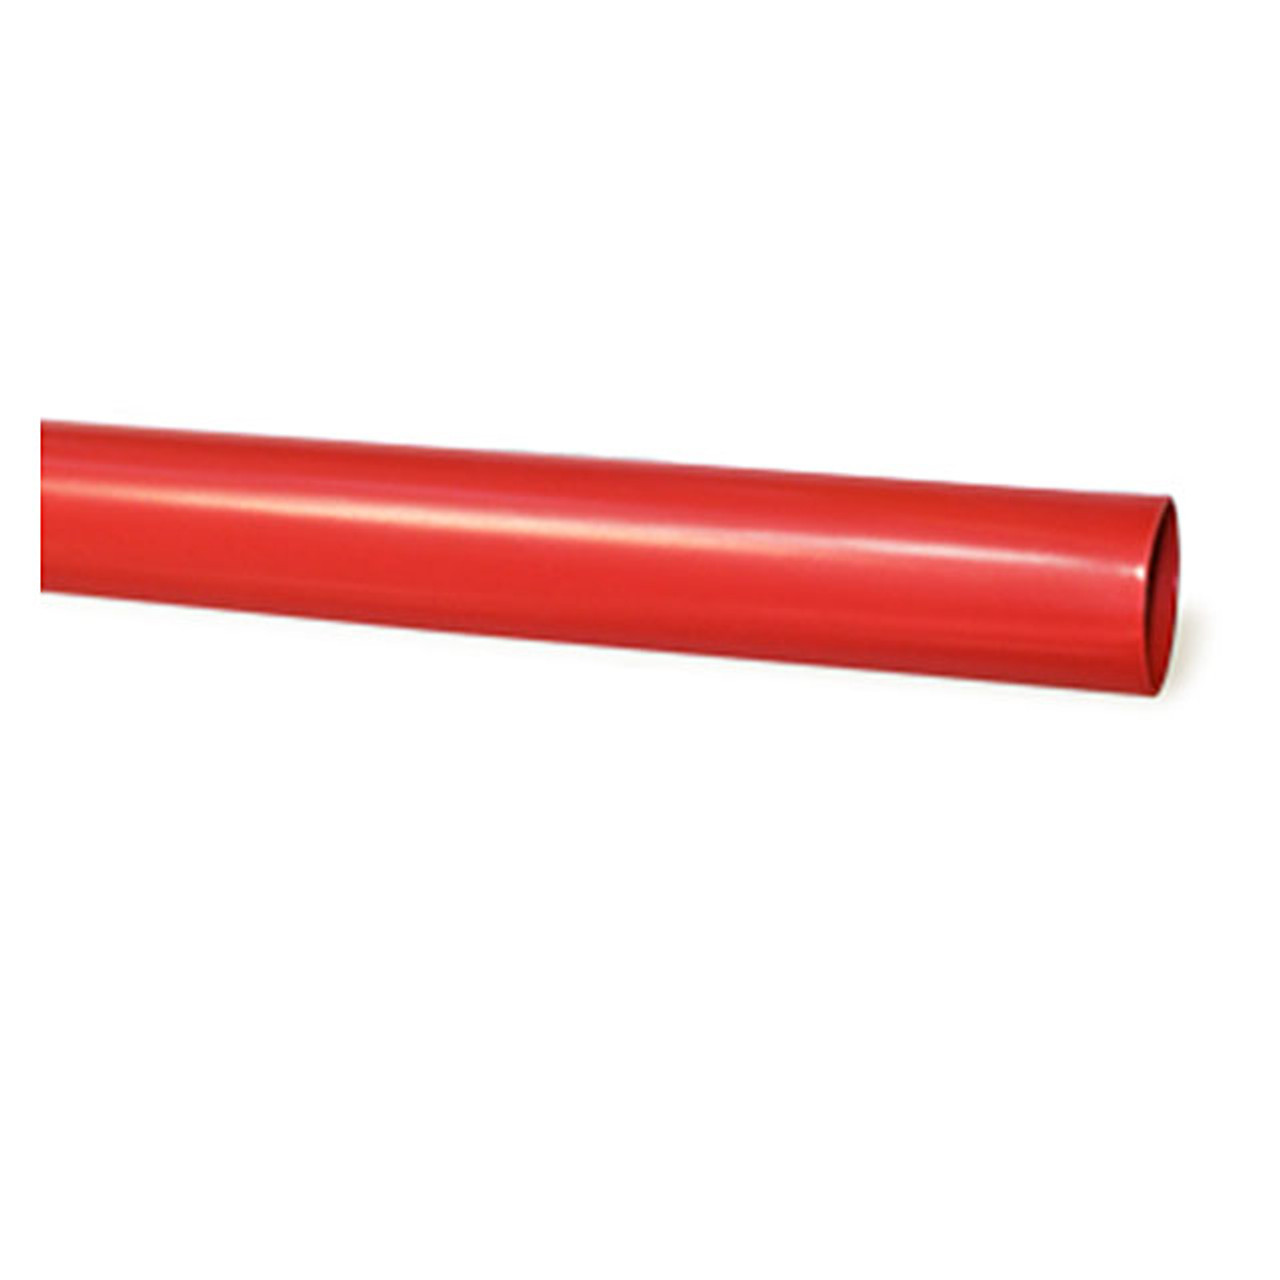 "HEAT SHRINK 1.0"" RED 4' ADHESIVE LINED DUAL WALL"